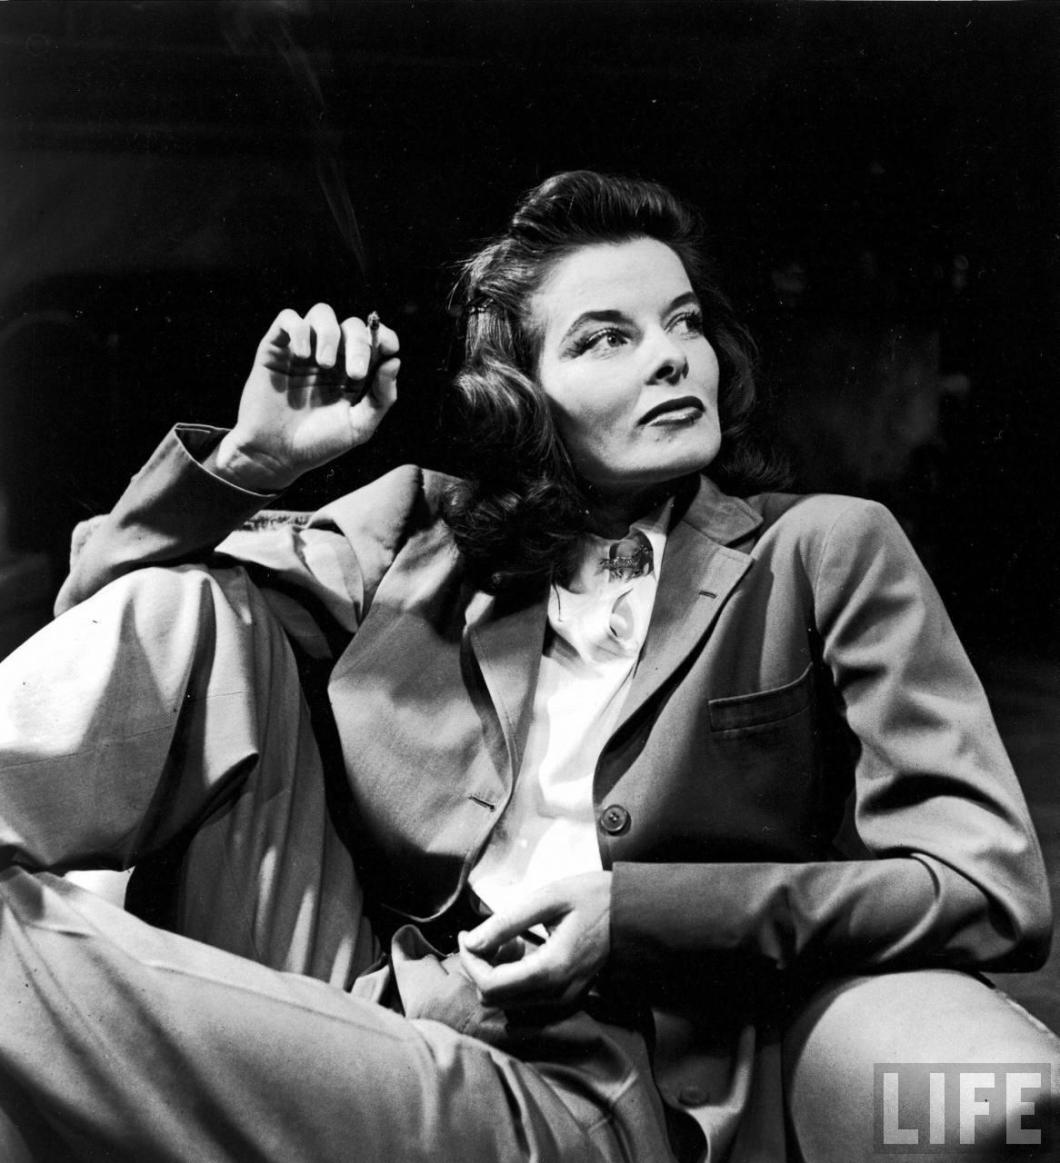 lapel roll reference katherine-hepburn-for-time-magaine-by-alfred-eisenstaedt-suit-179de400f8b7d7c01586c4200dcc194e-large-335491